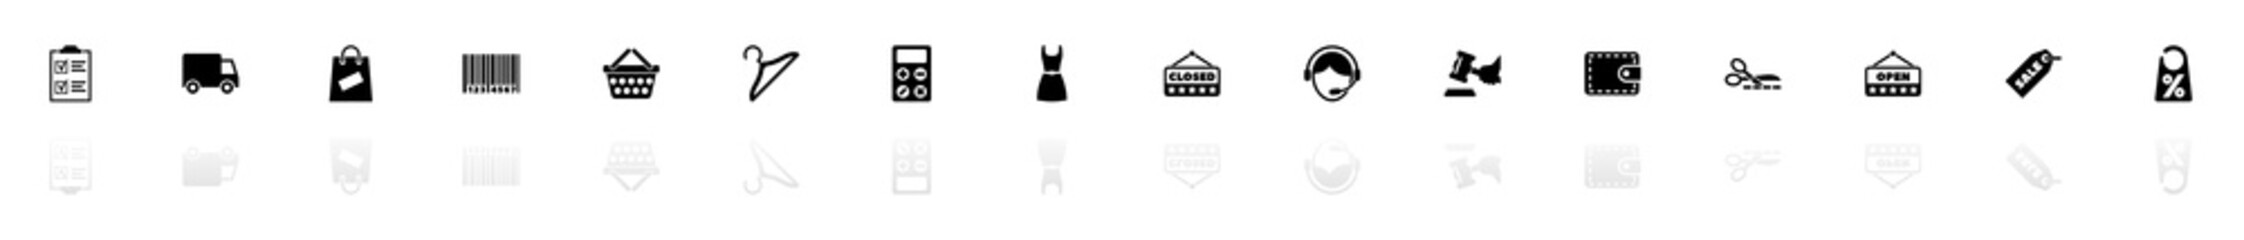 Shopping icons - Black horizontal Illustration symbol on White Background with a mirror Shadow reflection. Flat Vector Icon.